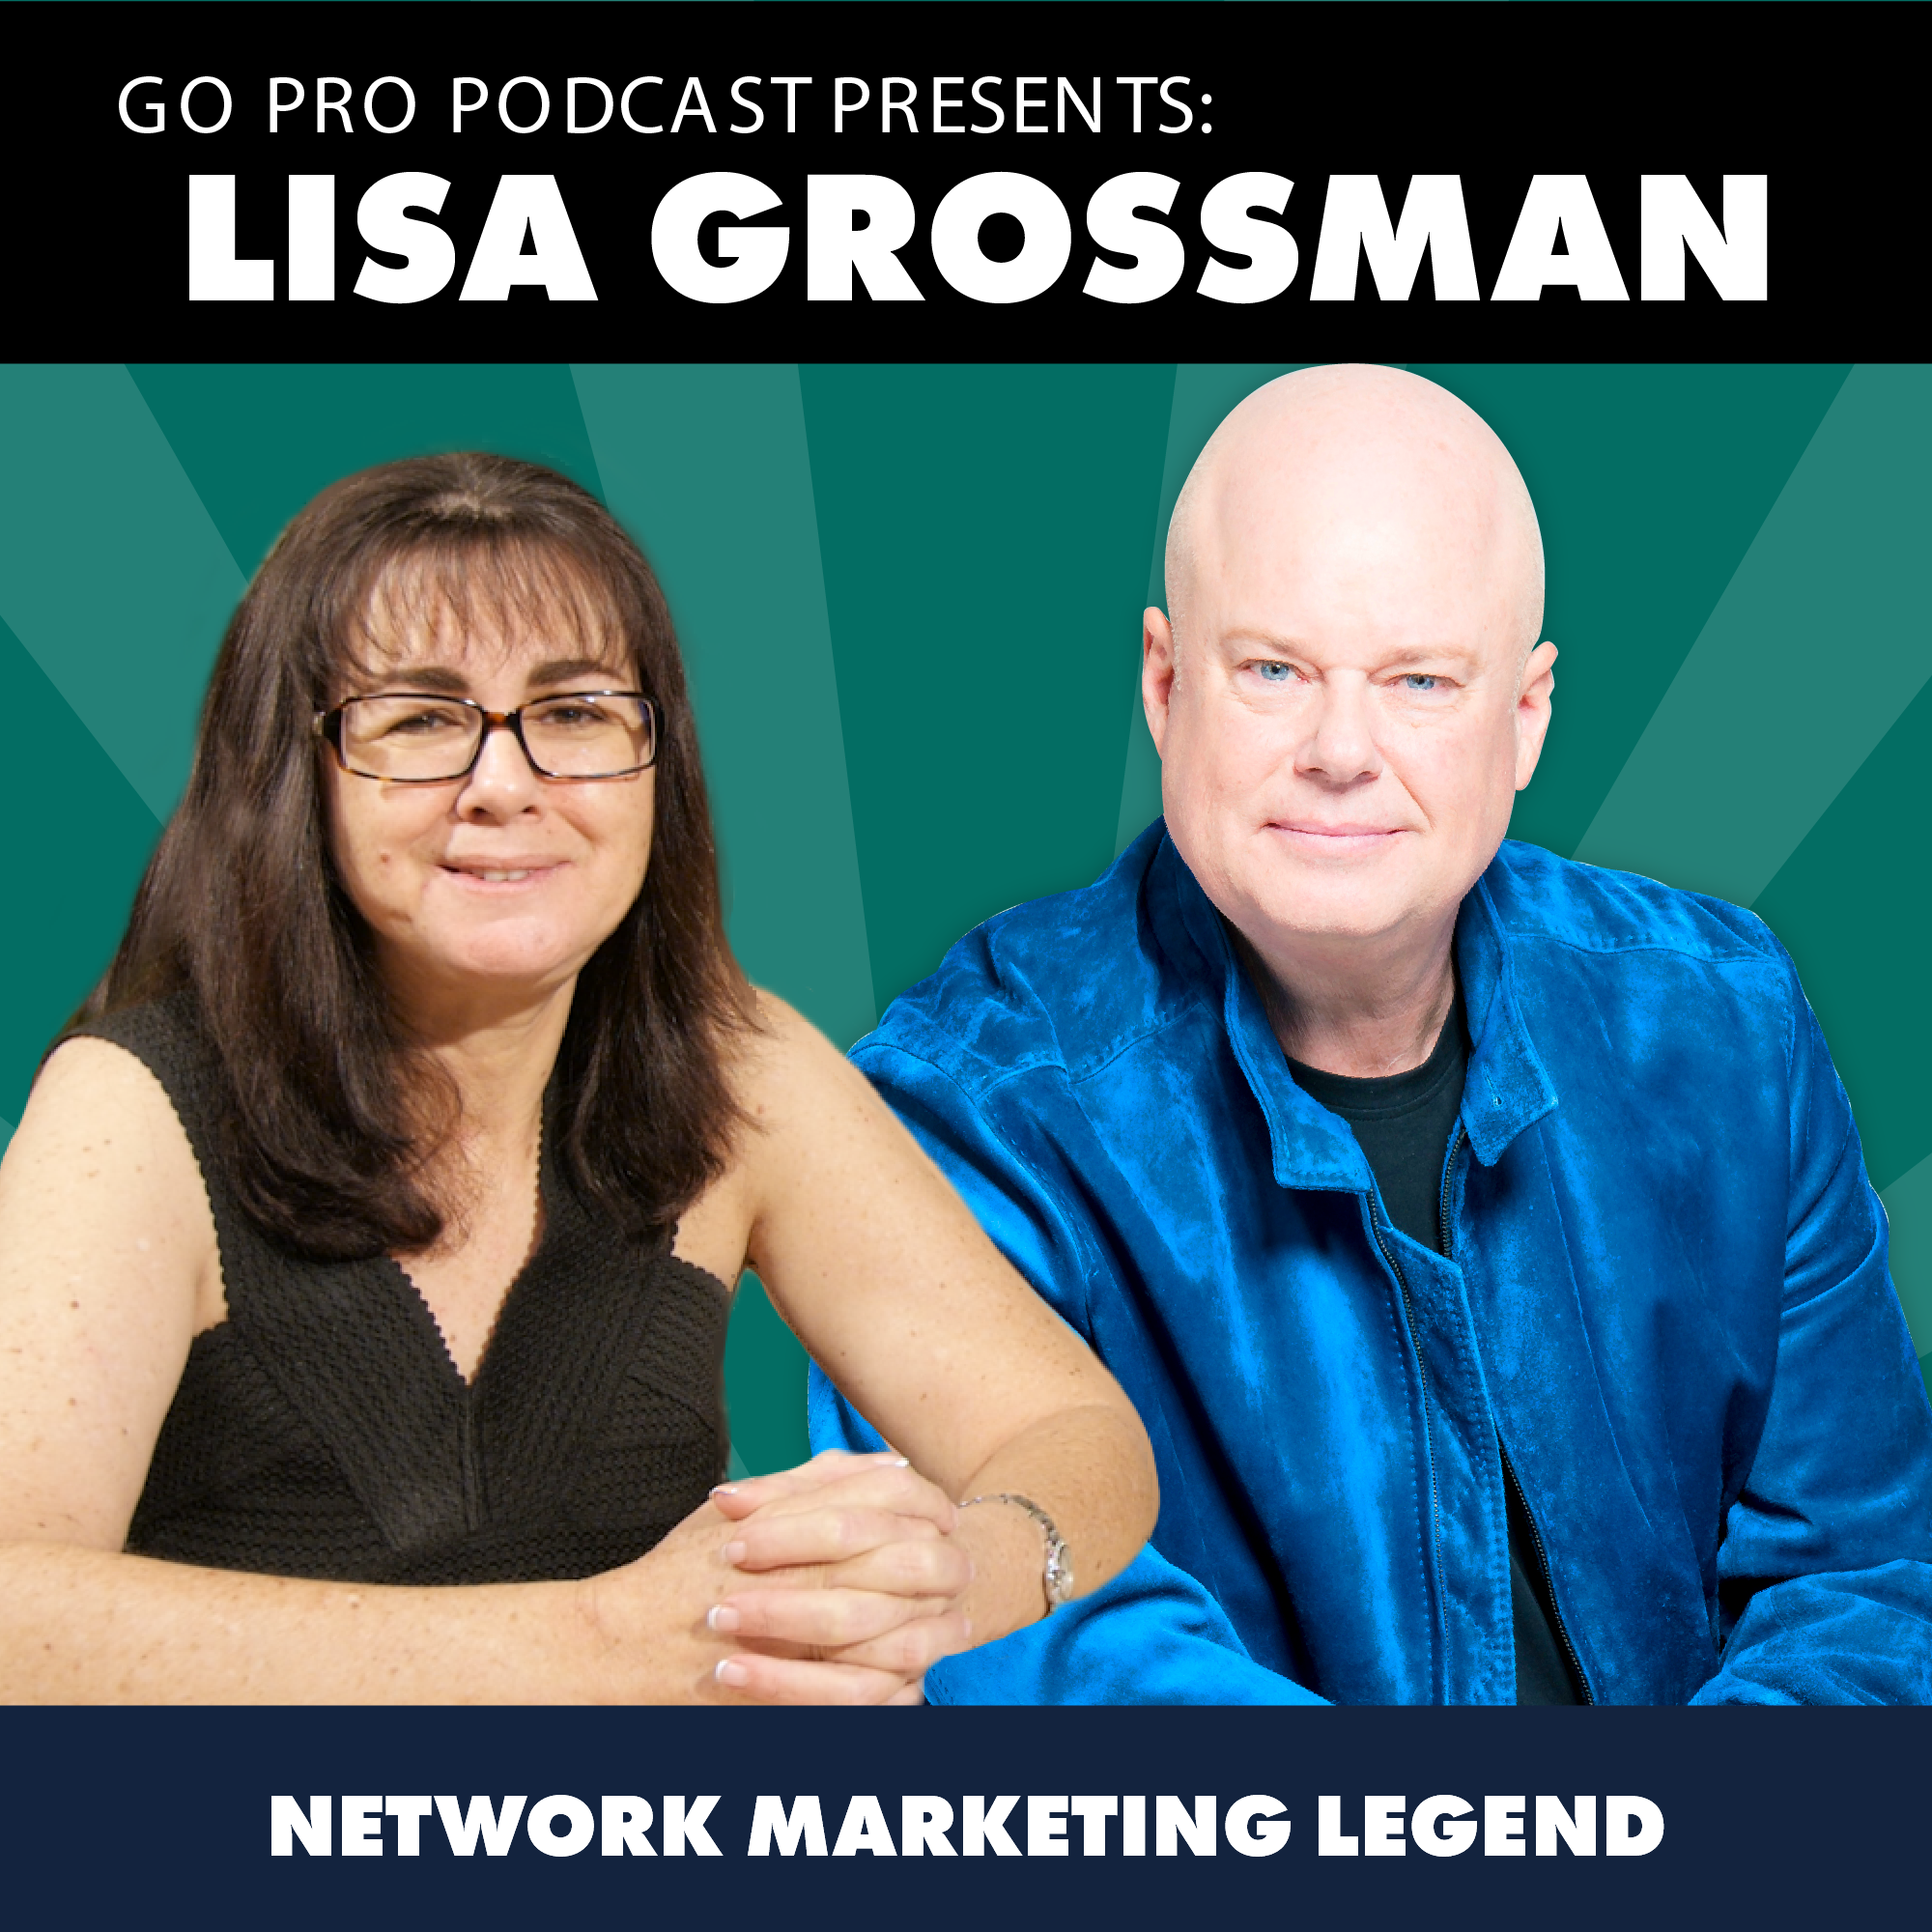 Lisa Grossmann: Network Marketing Legend